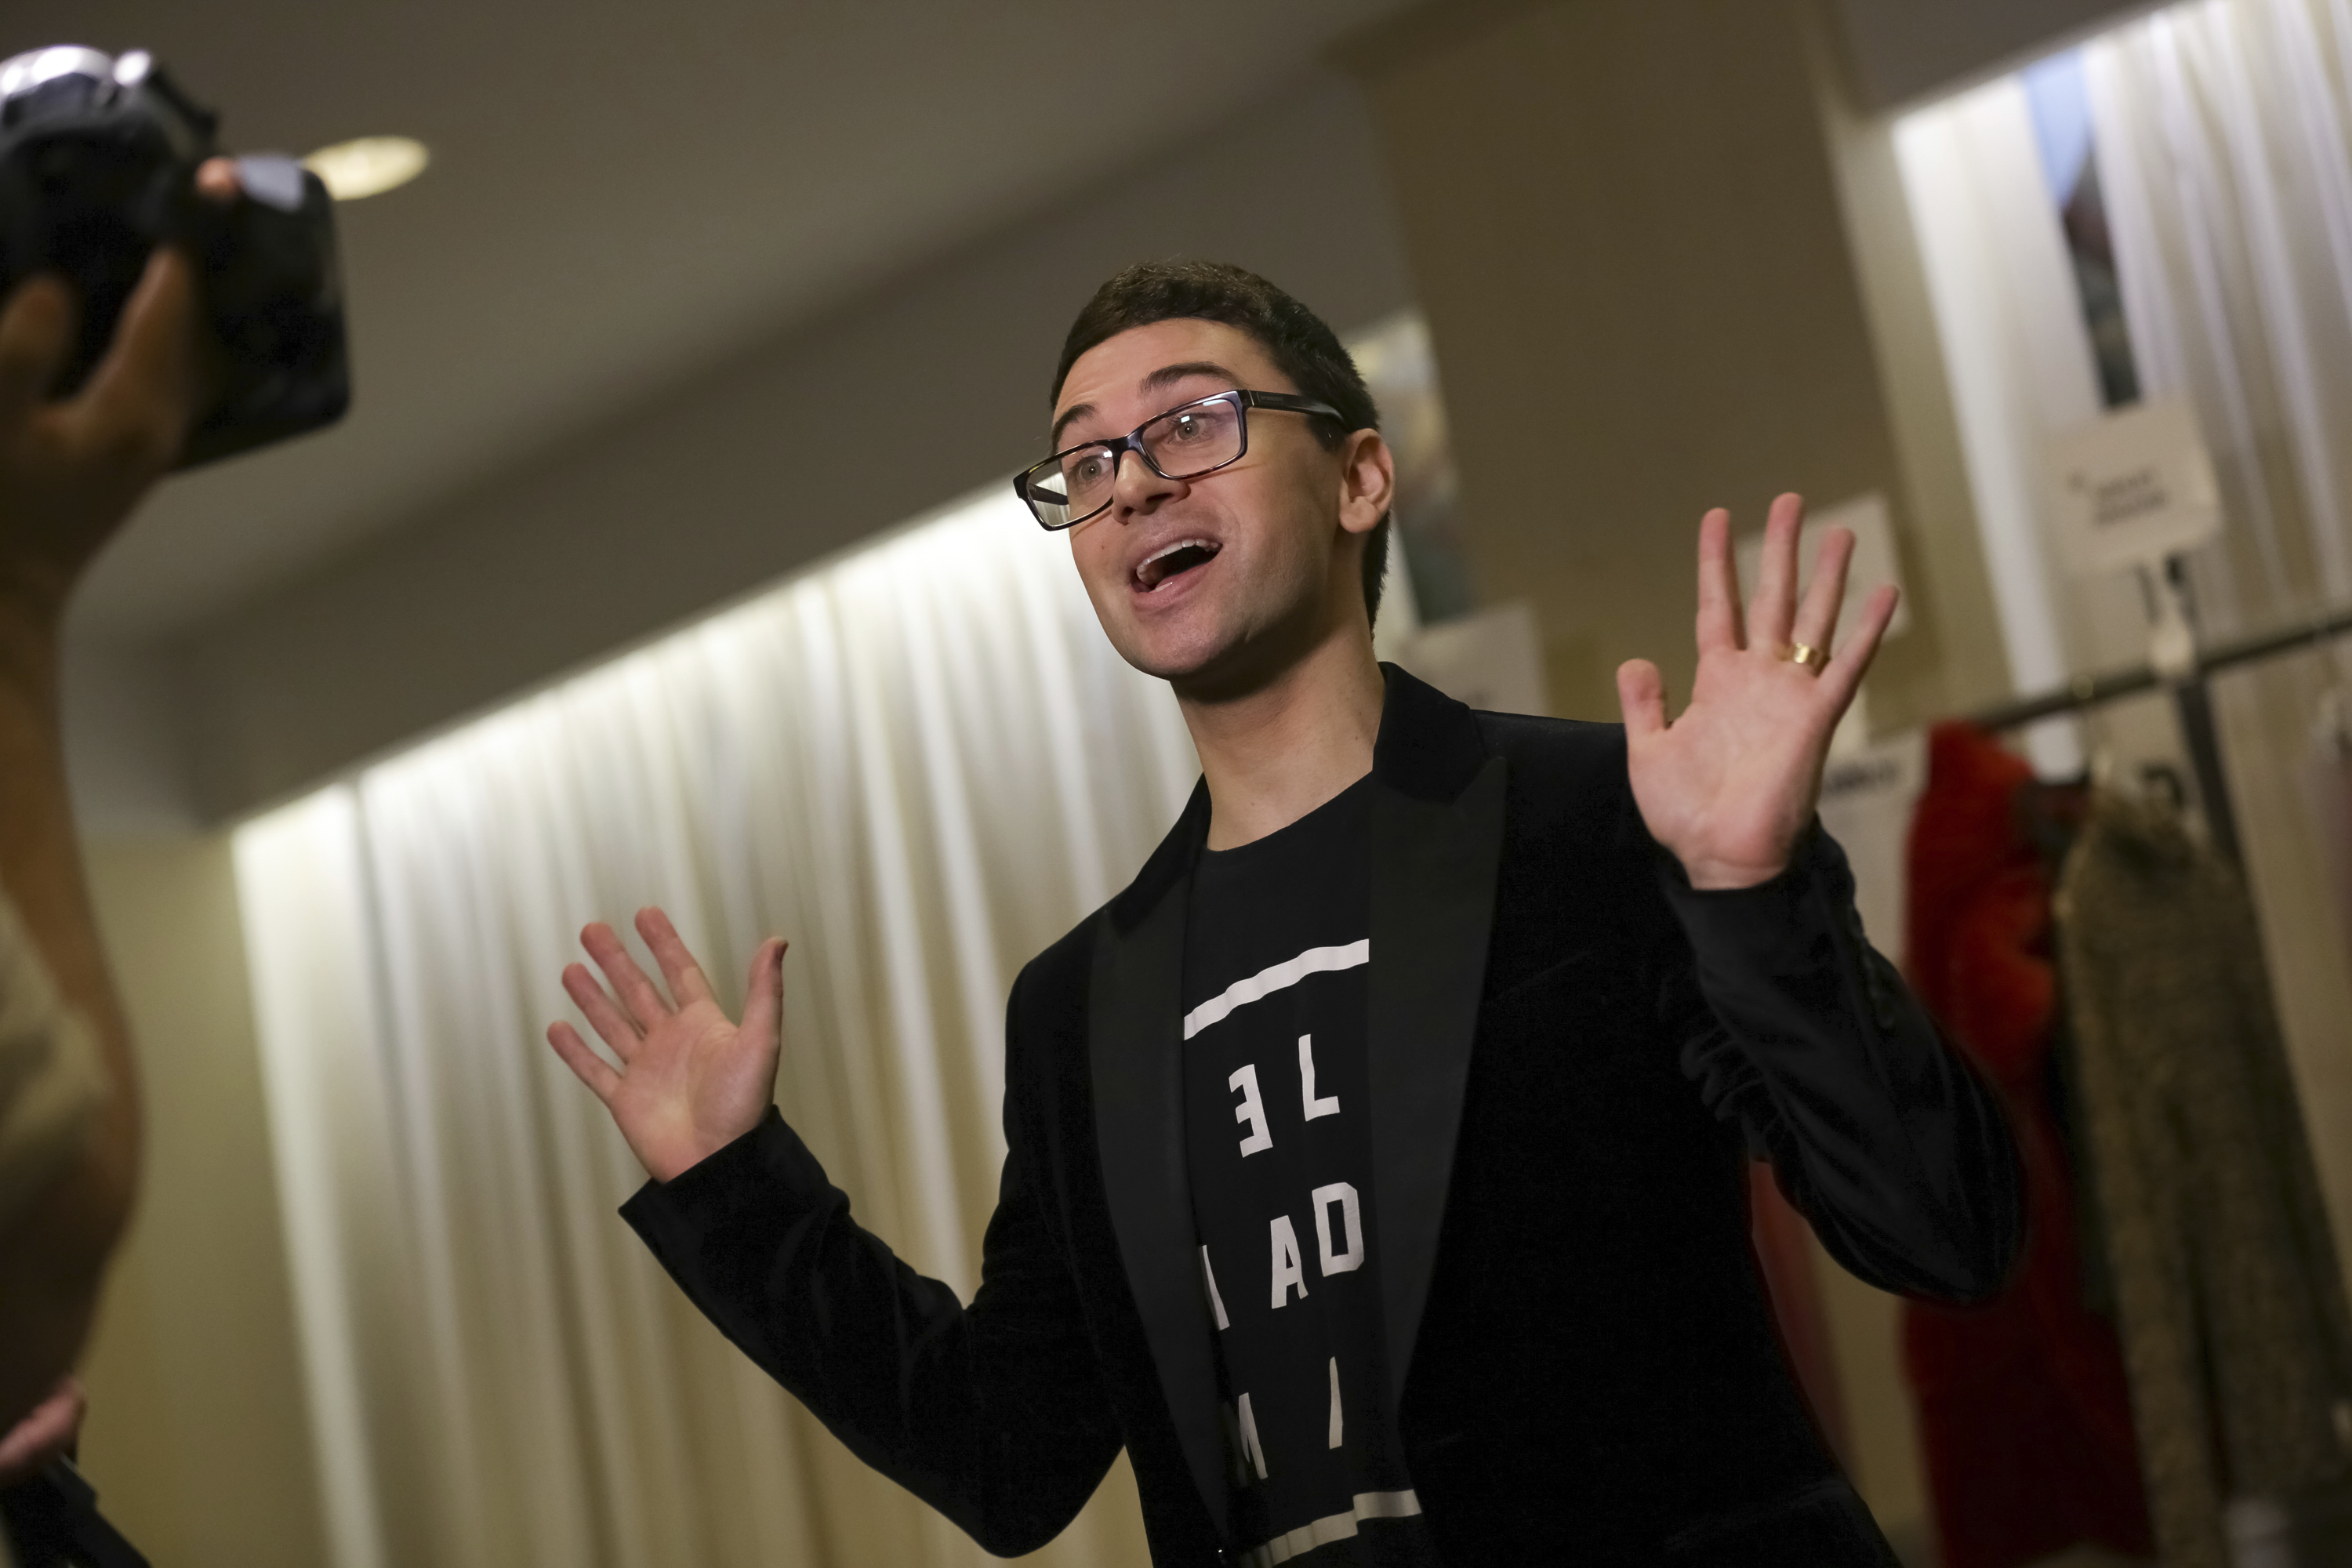 Designer Christian Siriano is seen backstage at the Christian Siriano 2018 Fall/Winter Runway Show during New York Fashion Week at the Grand Lodge on Saturday, Feb. 10, 2018 in New York. (Photo by Brent N. Clarke/Invision/AP)